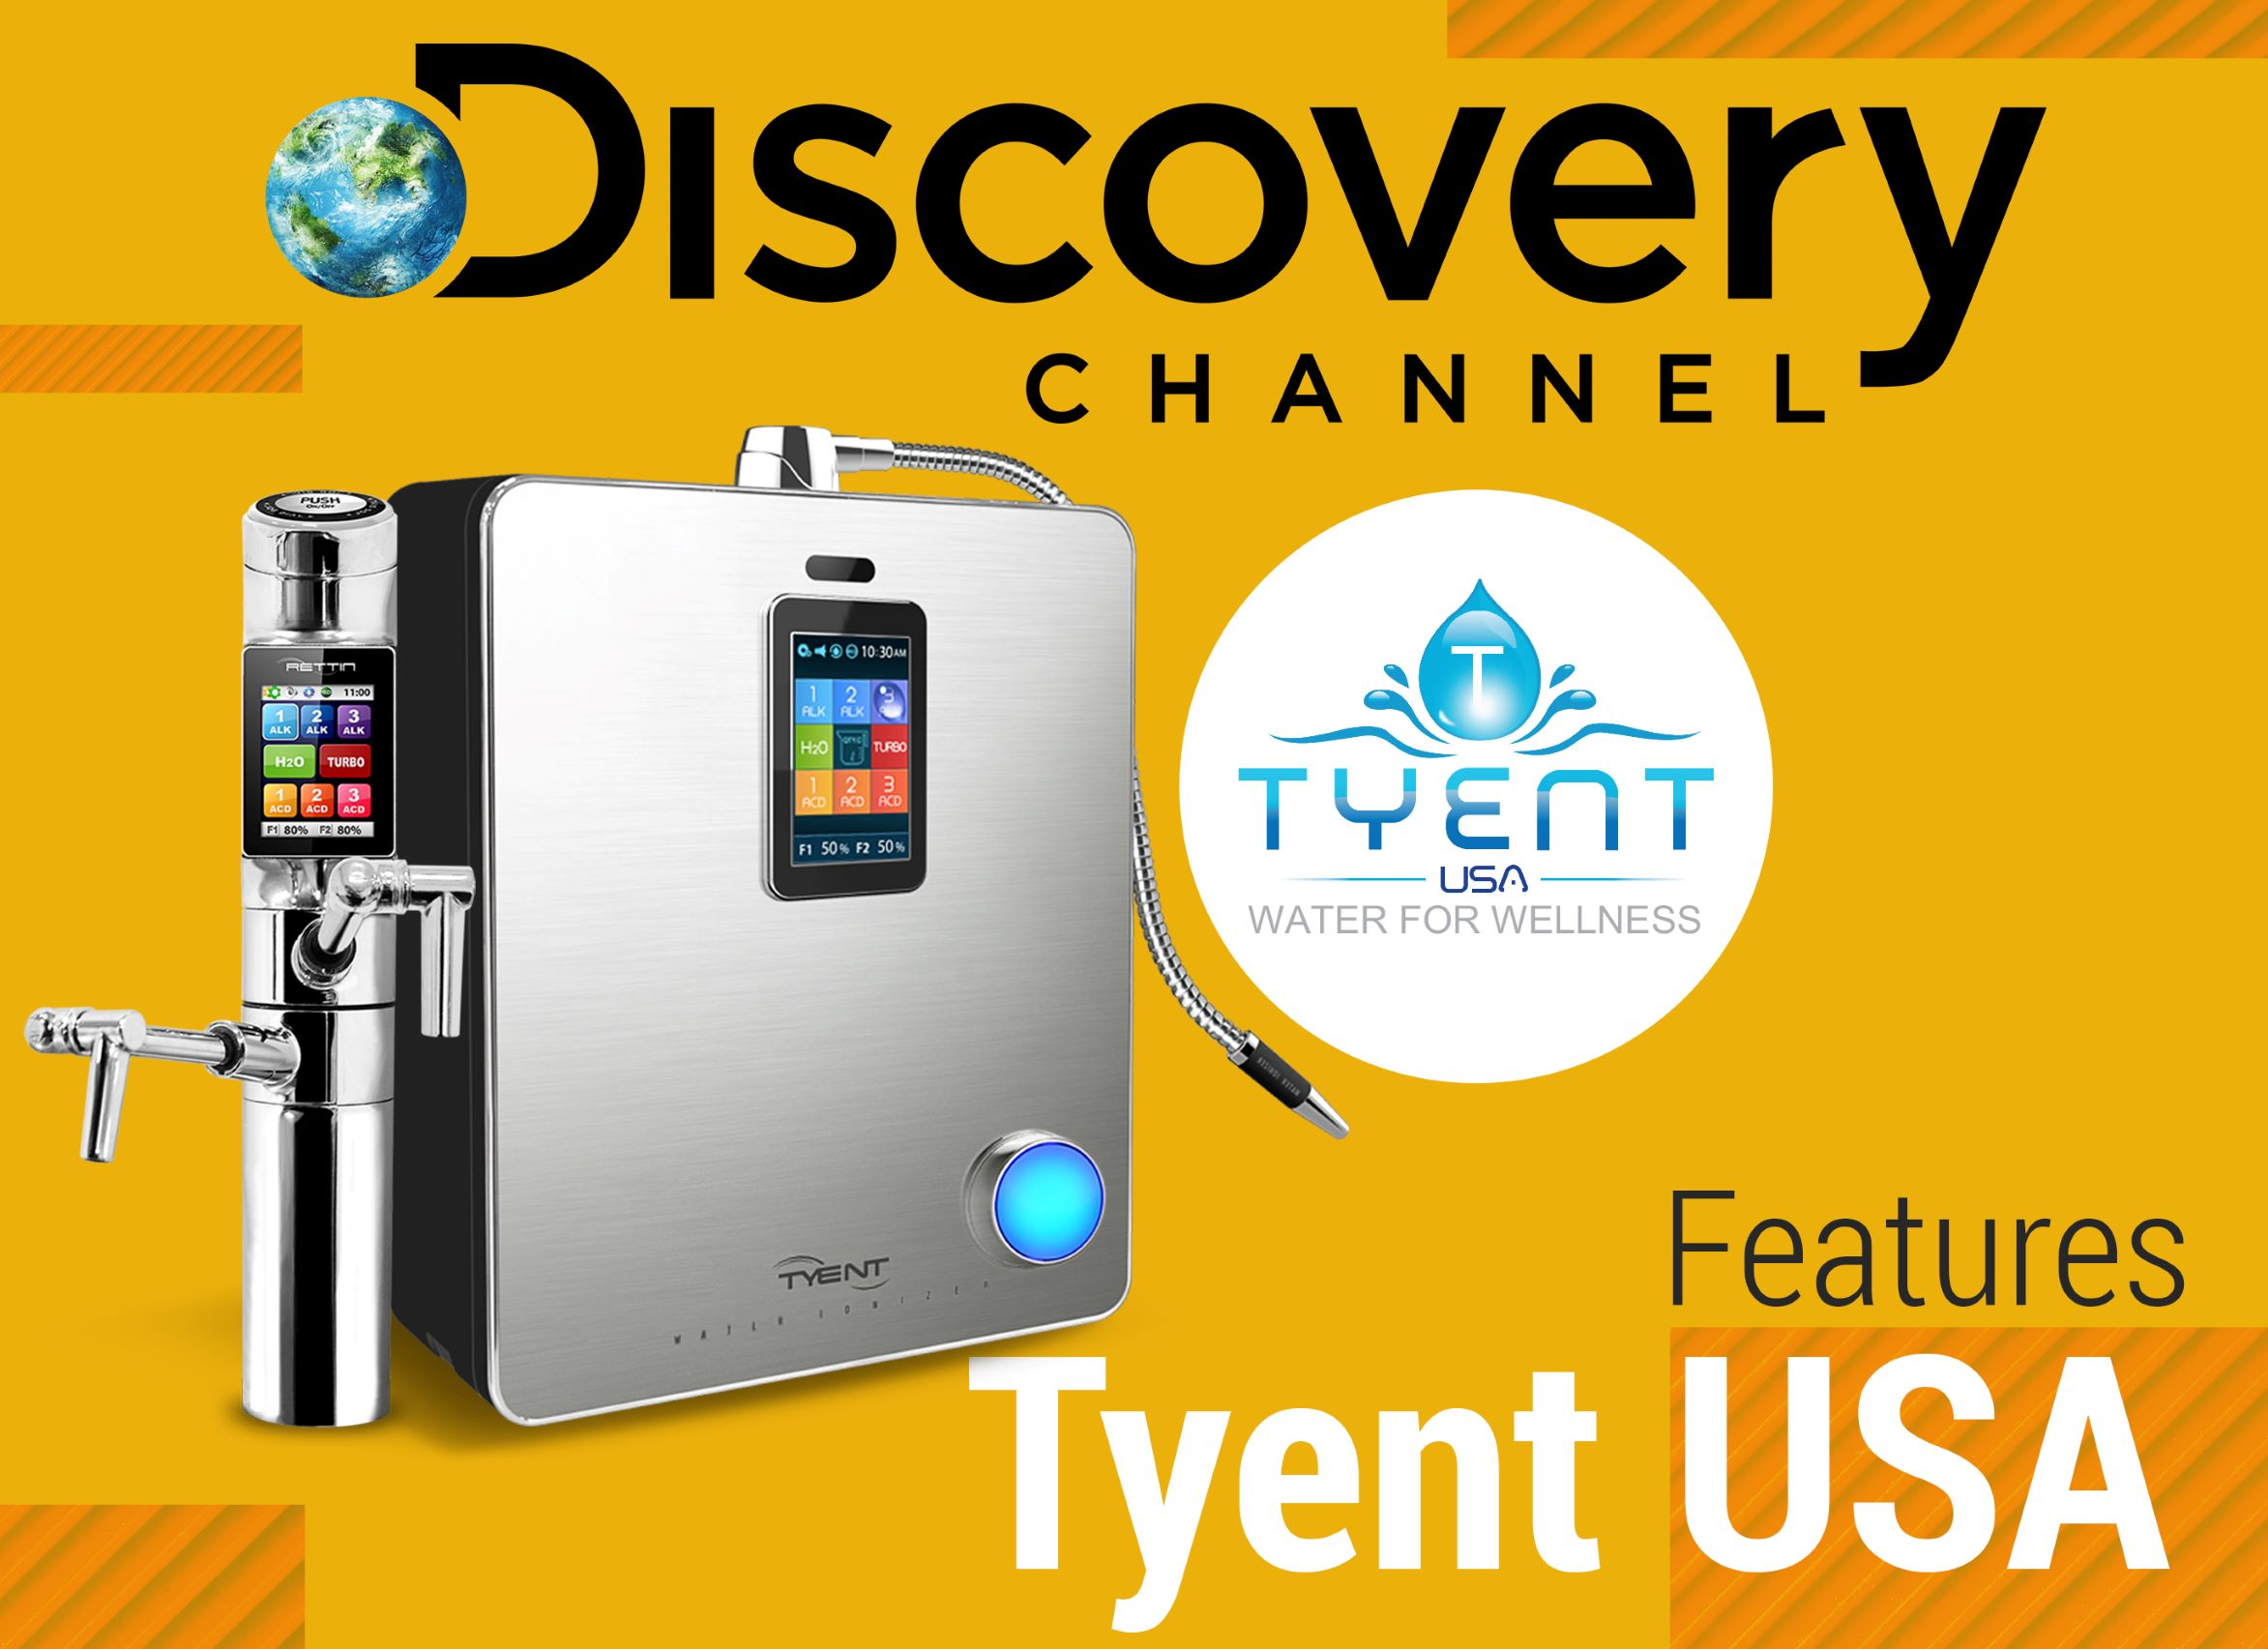 Discovery Channel Features Tyent USA